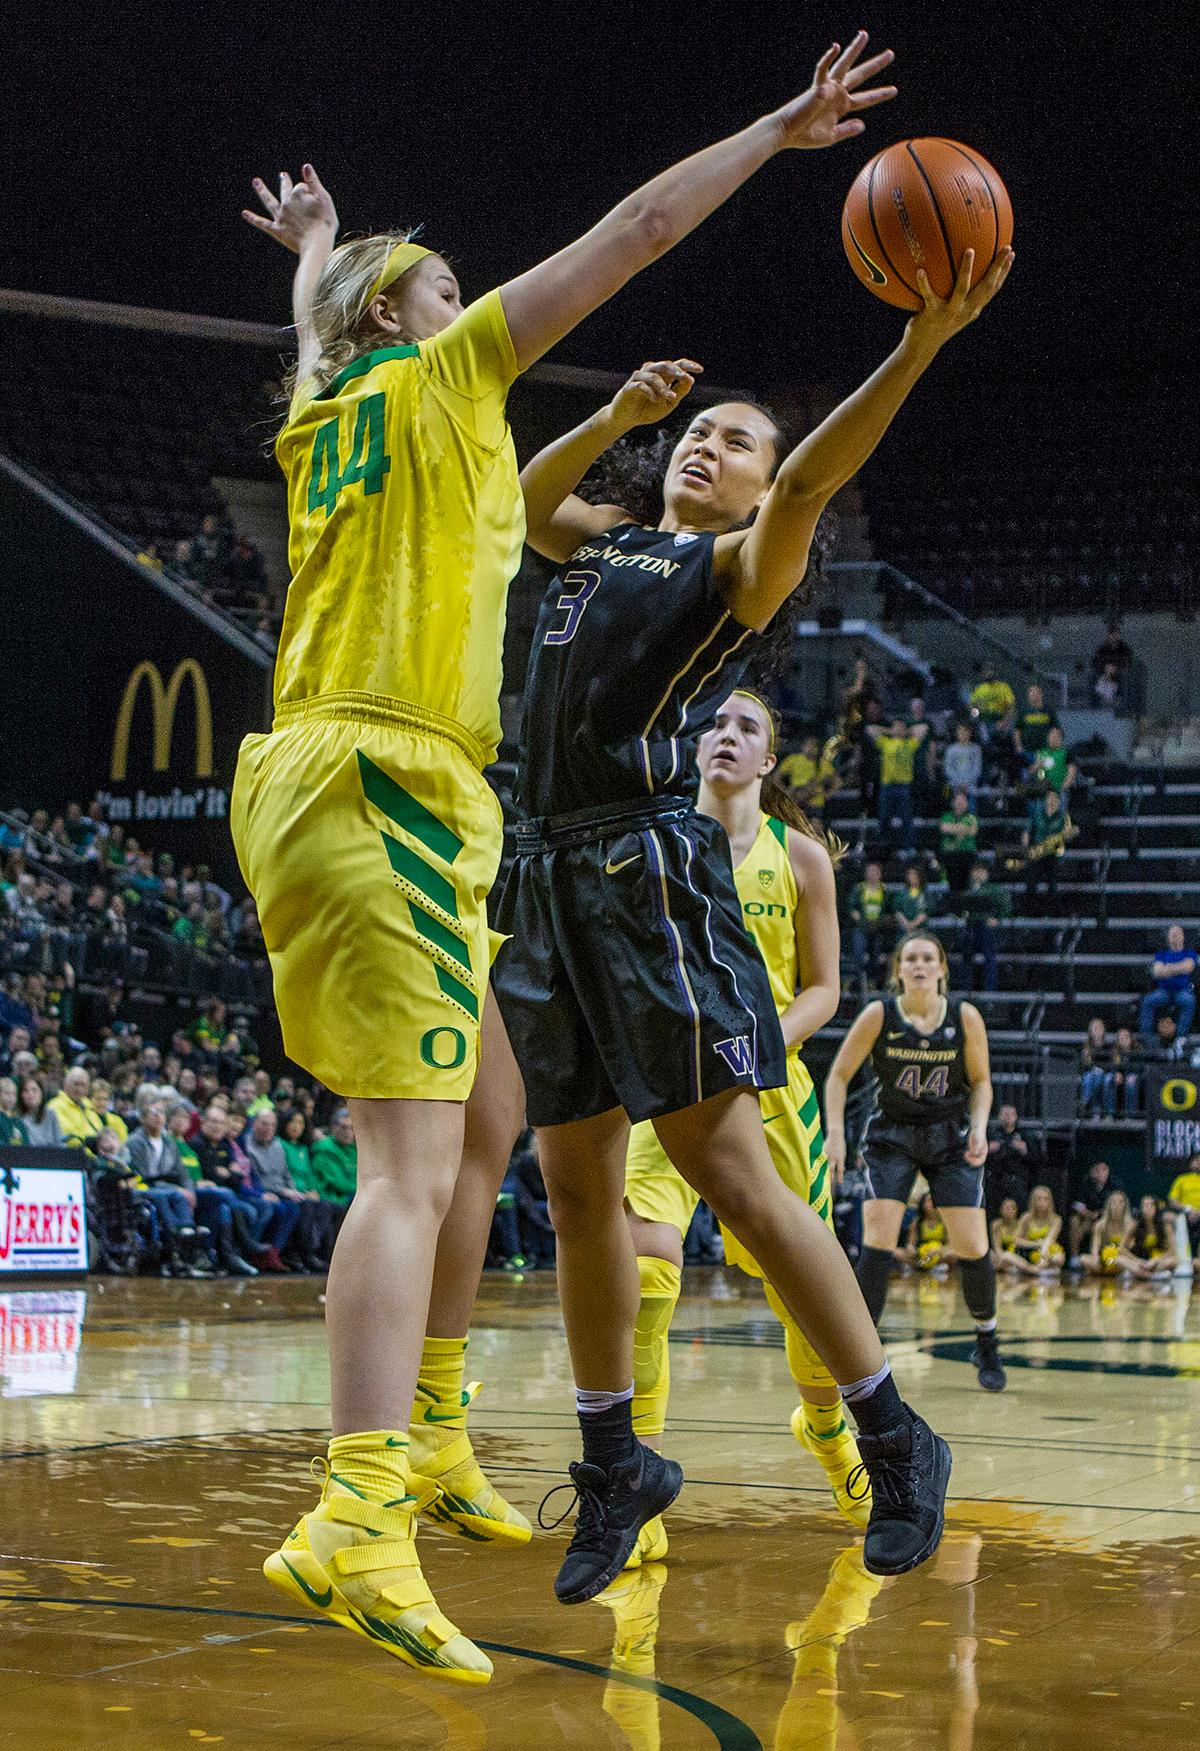 Oregon Ducks Mallory McGwire (#44) attempts to block the shot of Washington Huskies Mai-Loni Henson (#3). The Oregon Ducks defeated the Washington Huskies 94-83 on Sunday at Matthew Knight Arena. The victory was Head Coach Kelly Graves' 500th career win. Sabrina Ionescu also set the new NCAA all time record of 8 triple doubles in just 48 games. The previous record was 7 triple doubles in 124 games, held by Susie McConnell at Penn State. The Ducks will next face off against USC on Friday January 5th in Los Angeles. Photo by Rhianna Gelhart, Oregon News Lab